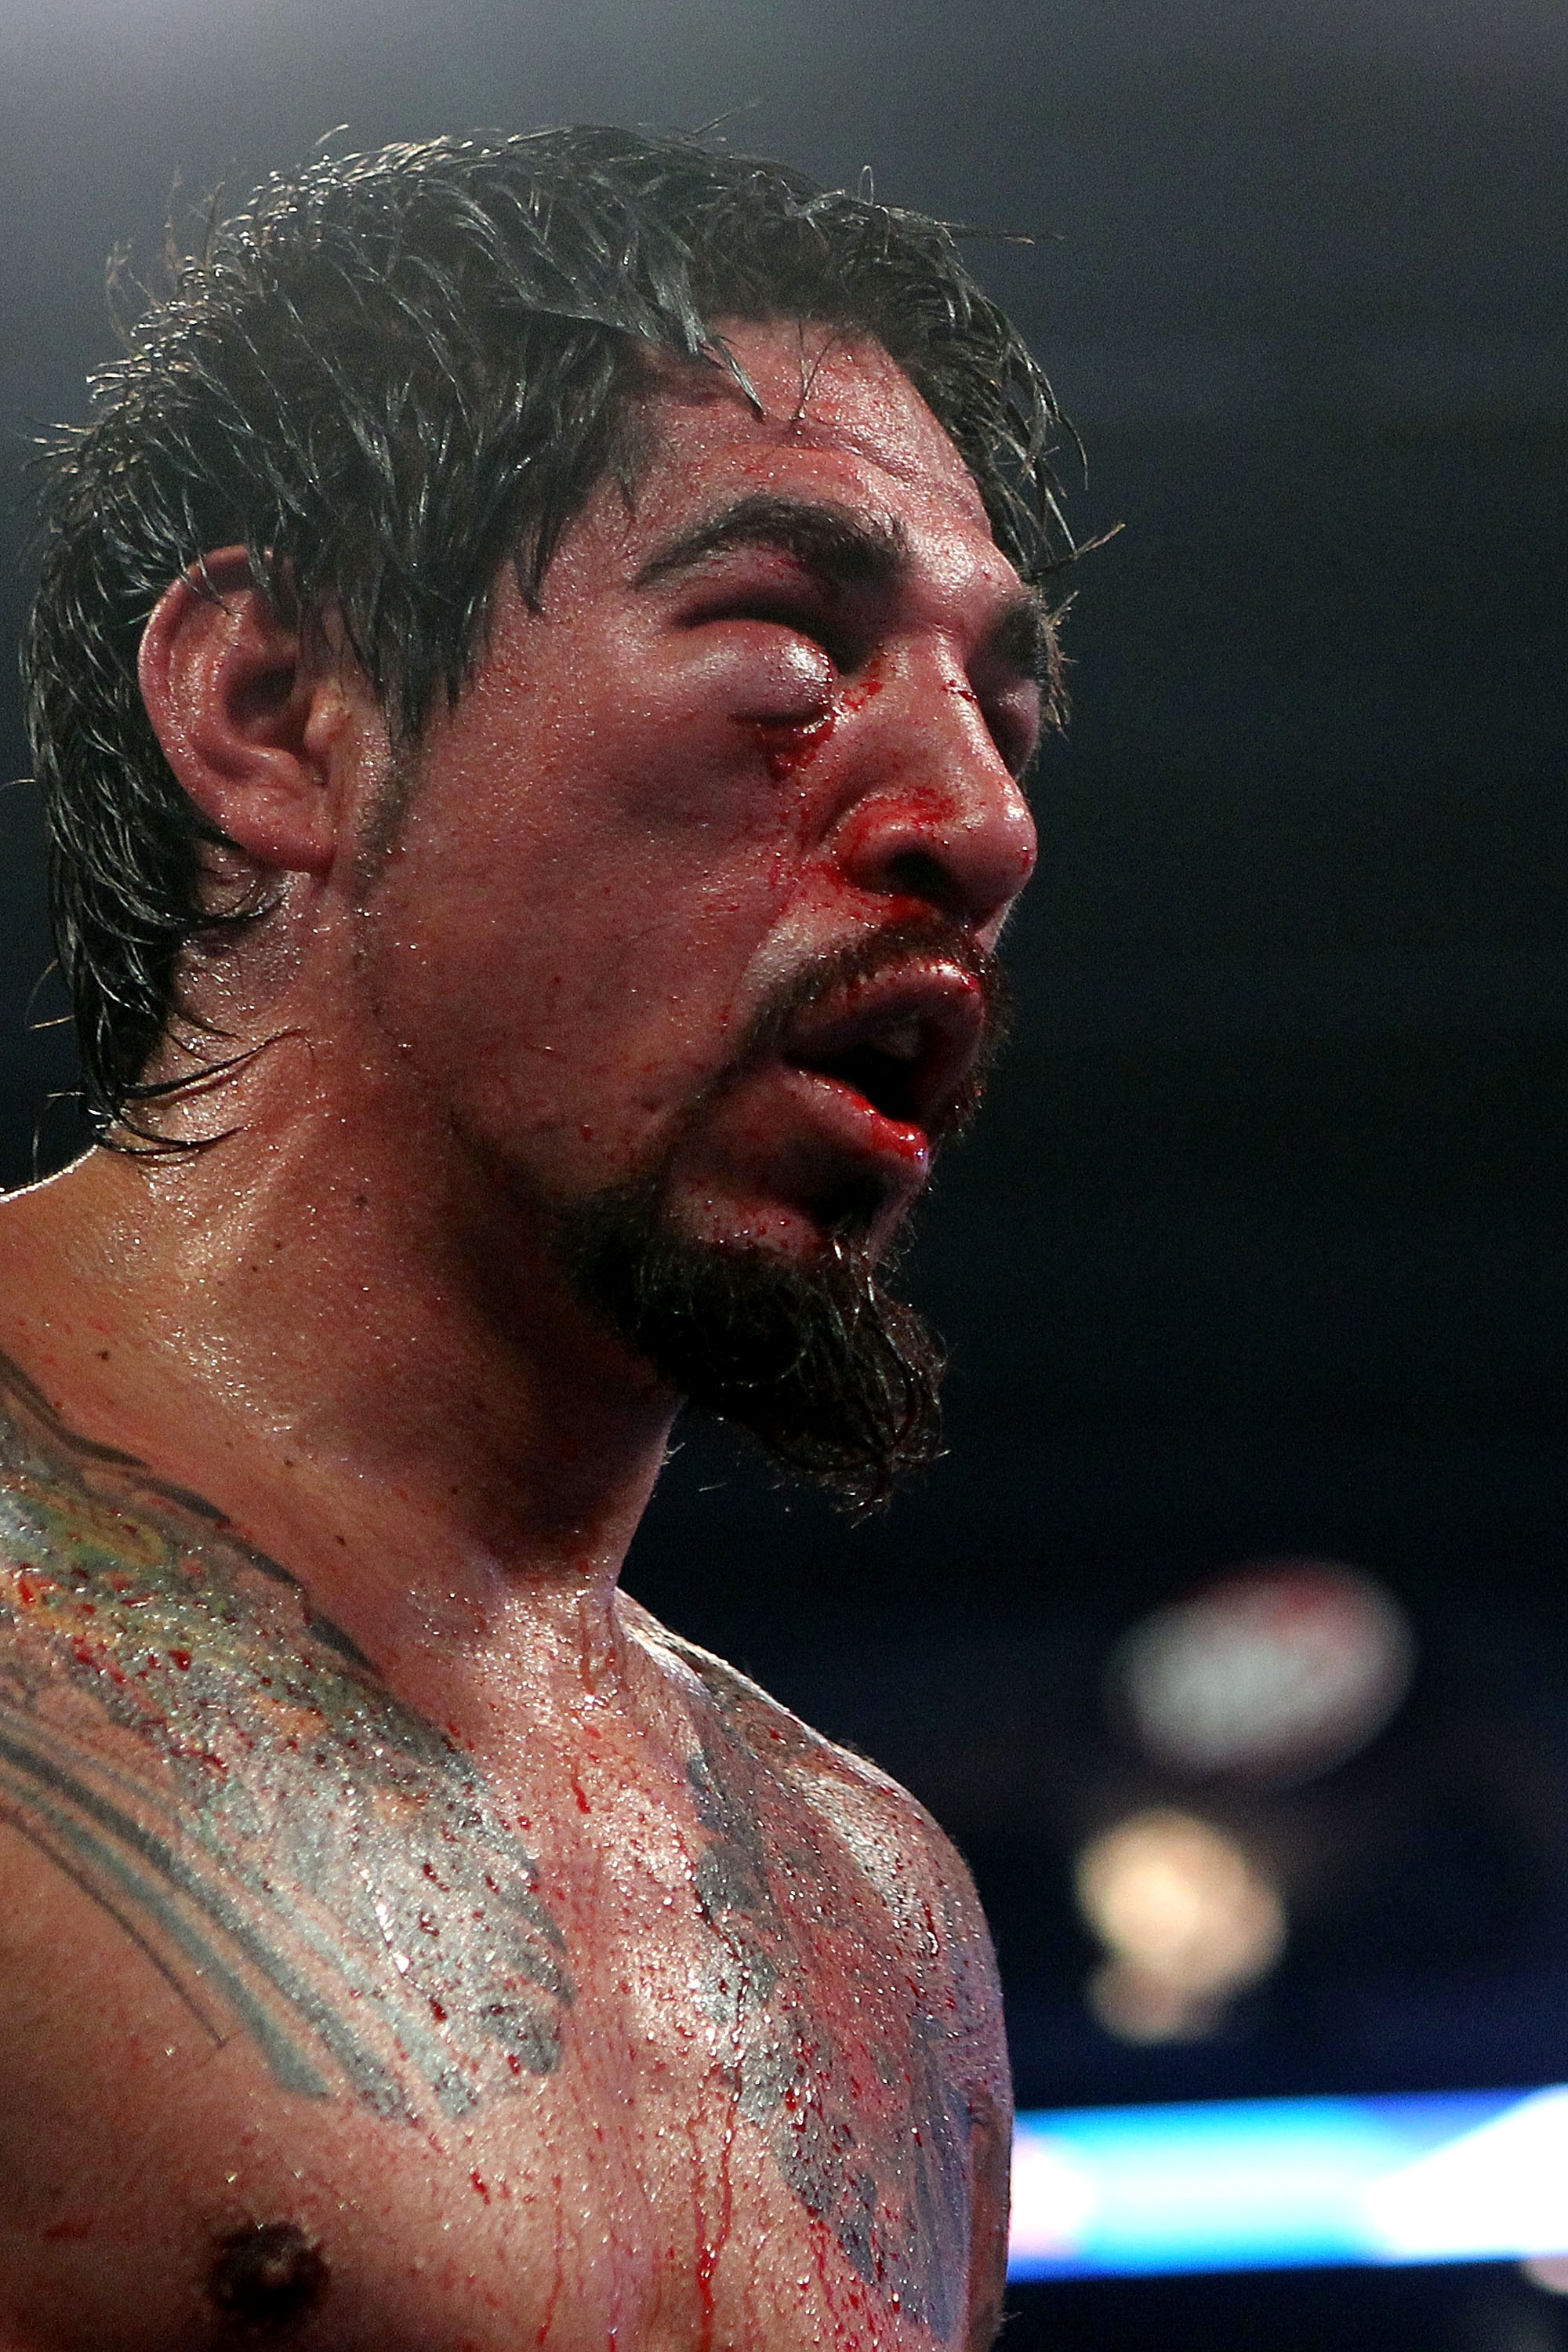 ARLINGTON, TX - NOVEMBER 13:  A detail of the cut on the right eye of Antonio Margarito (black trunks) of Mexico is seen as he fights against Manny Pacquiao (white trunks) of the Philippines during their WBC World Super Welterweight Title bout at Cowboys